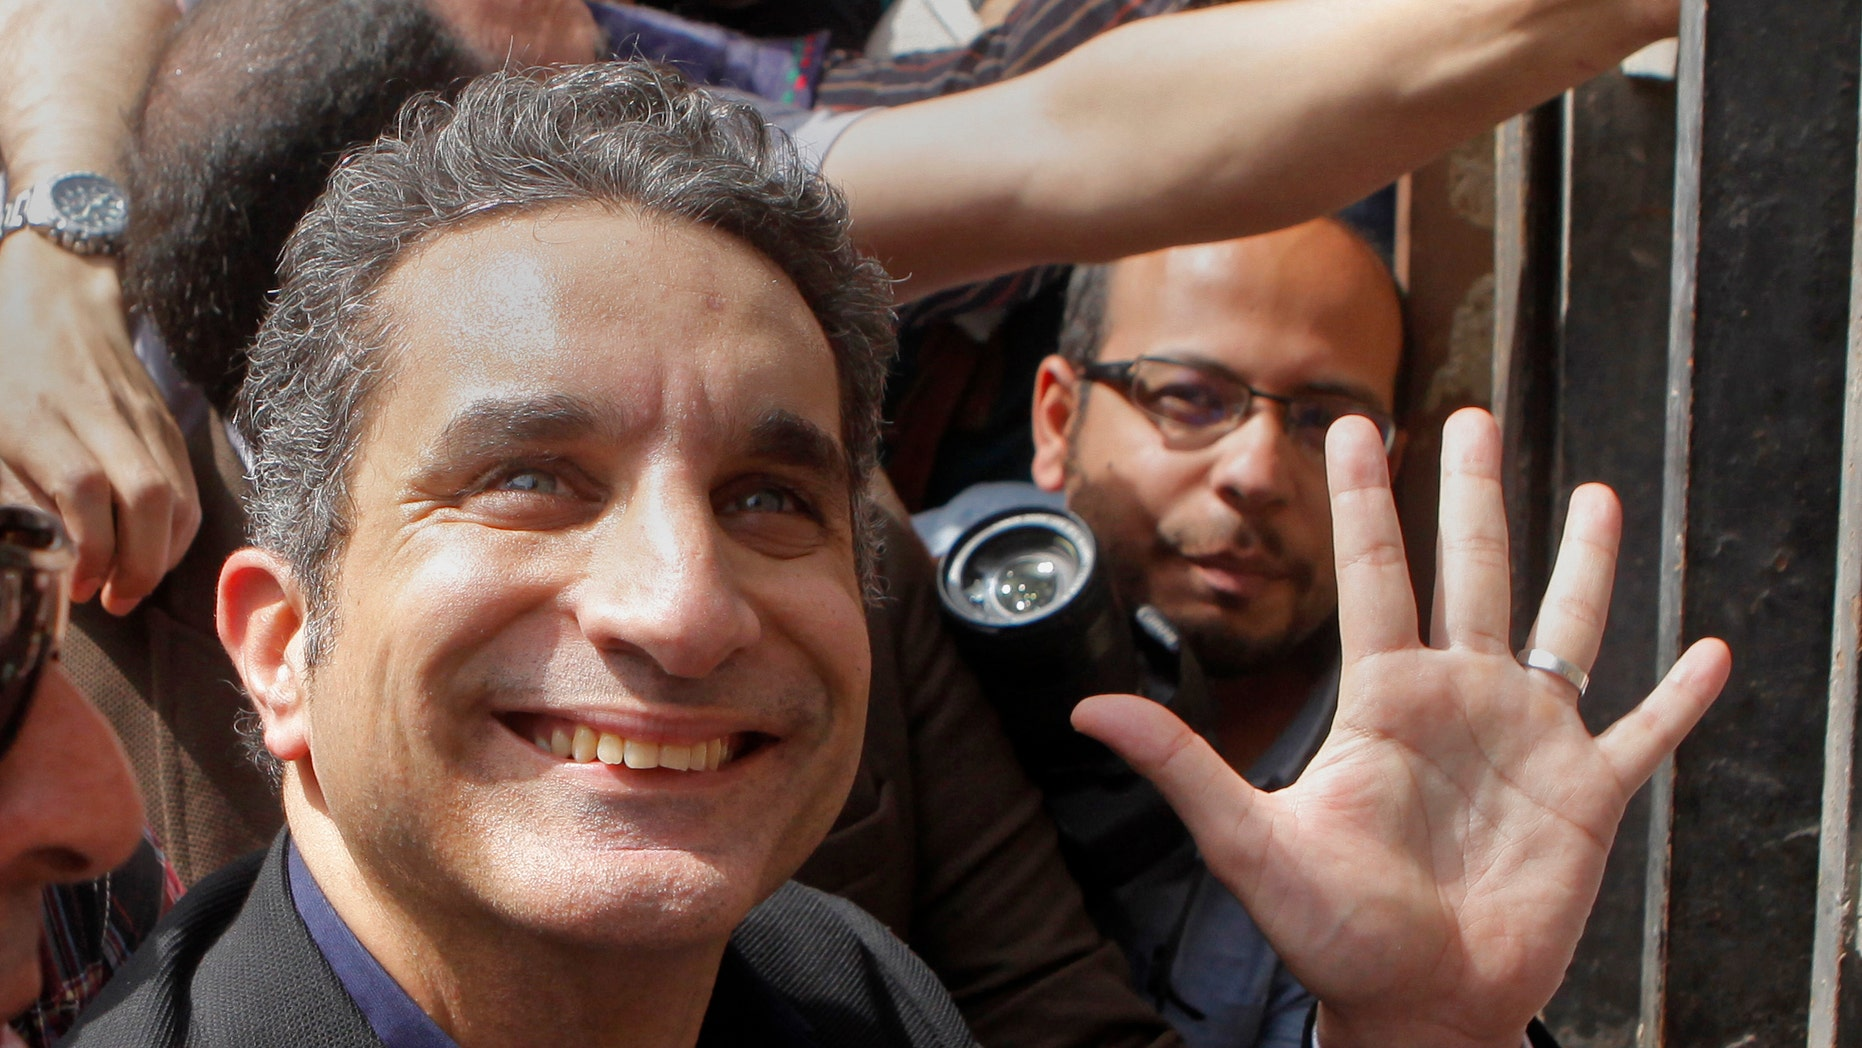 Popular Egyptian television satirist Bassem Youssef, who has come to be known as Egypt's Jon Stewart, waves to is supporters as he enters Egypt's state prosecutors office to face accusations of insulting Islam and the country's Islamist leader in Cairo, Egypt, Sunday, March 31, 2013. Government opponents said the warrant against such a high profile figure, known for lampooning President Mohammed Morsi and the new Islamist political class, was an escalation in a campaign to intimidate critics. (AP Photo/Amr Nabil)